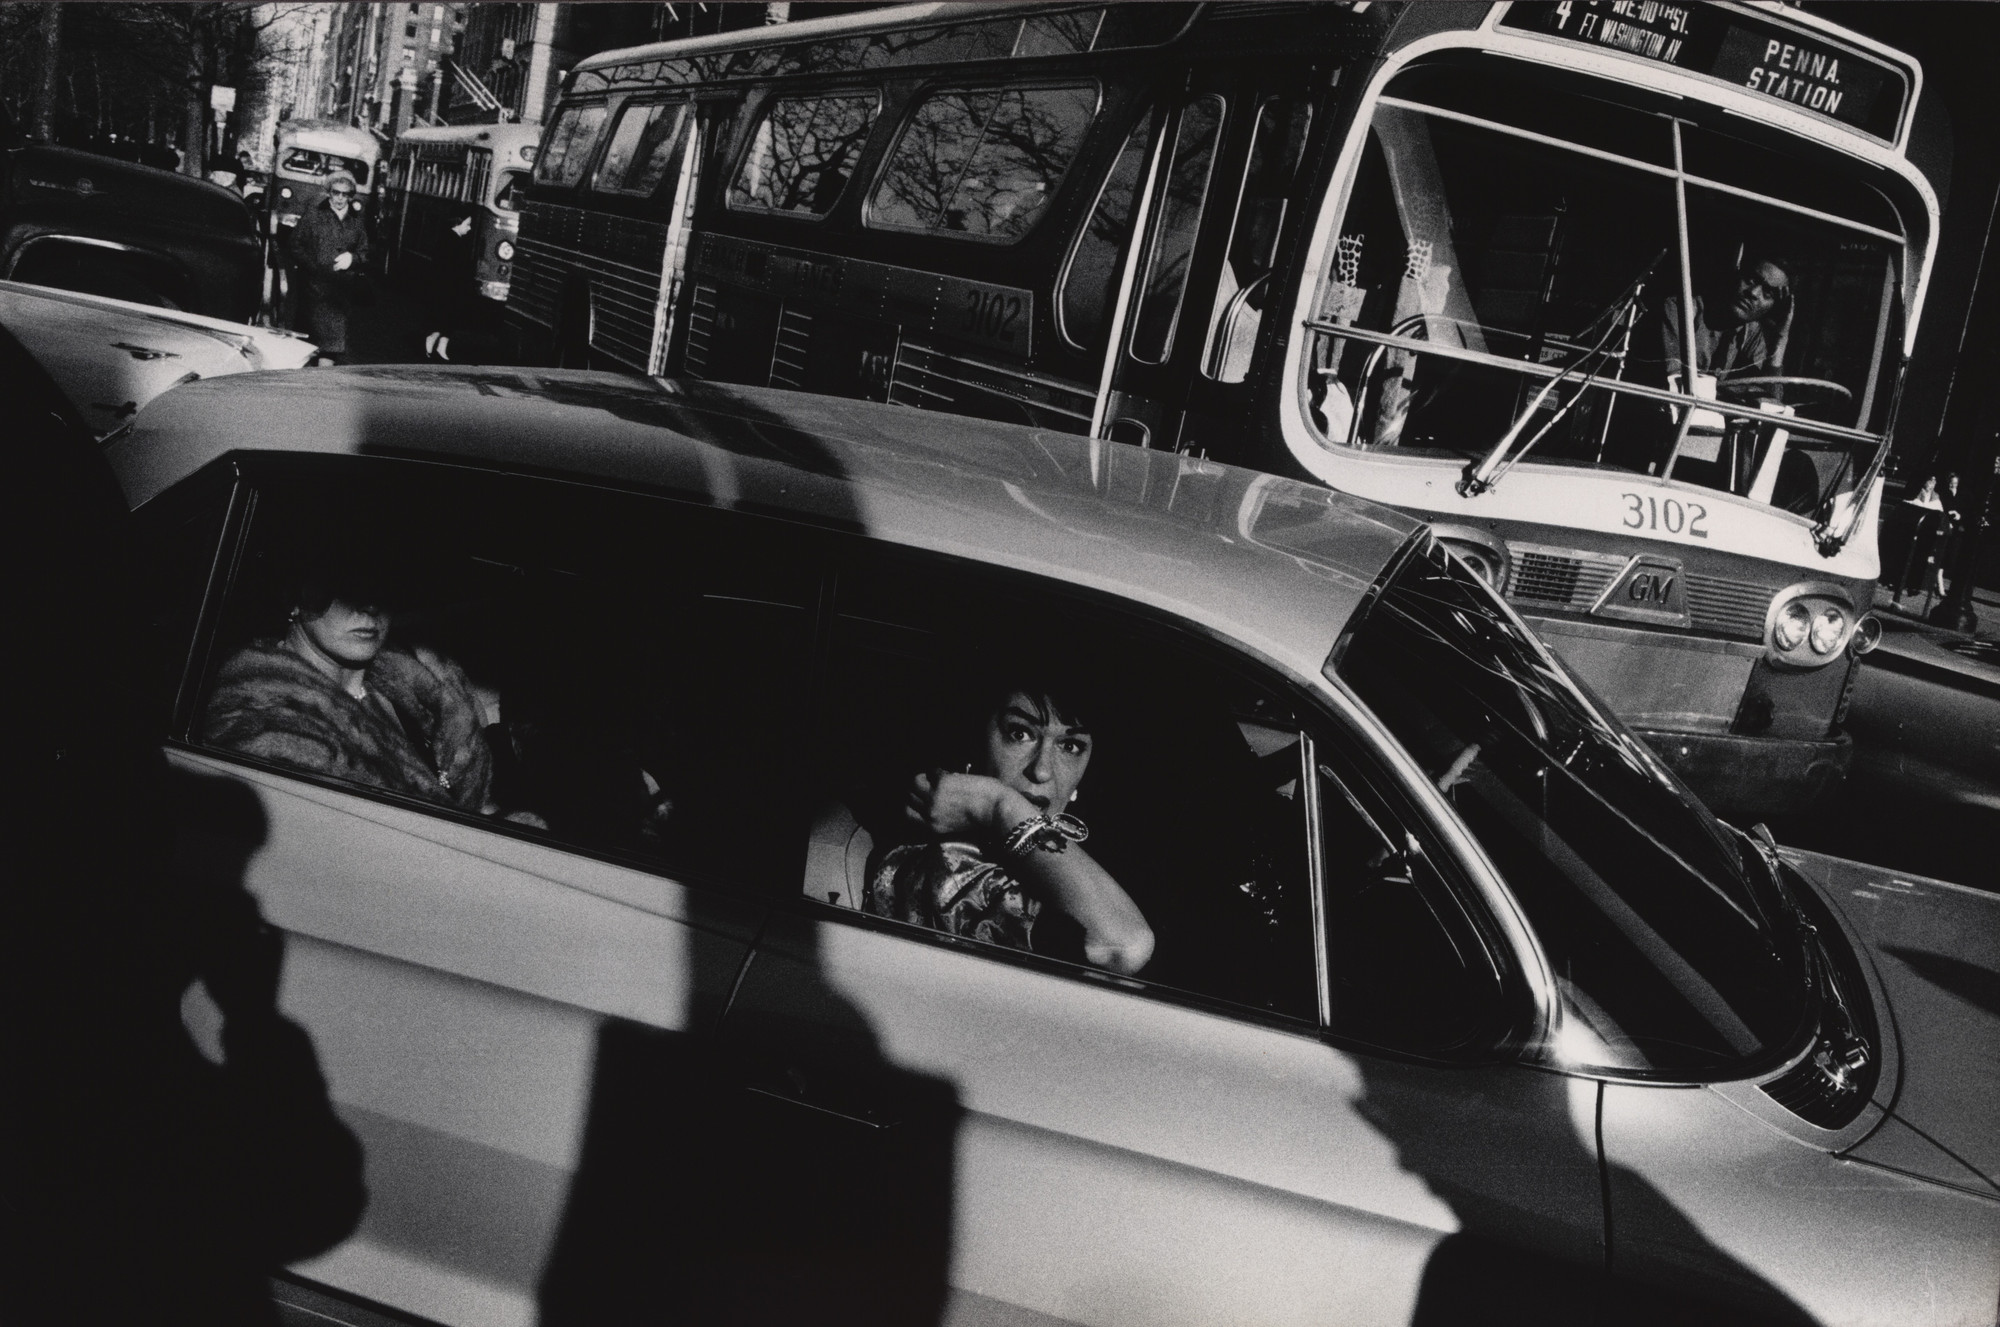 Garry Winogrand. Untitled. 1962